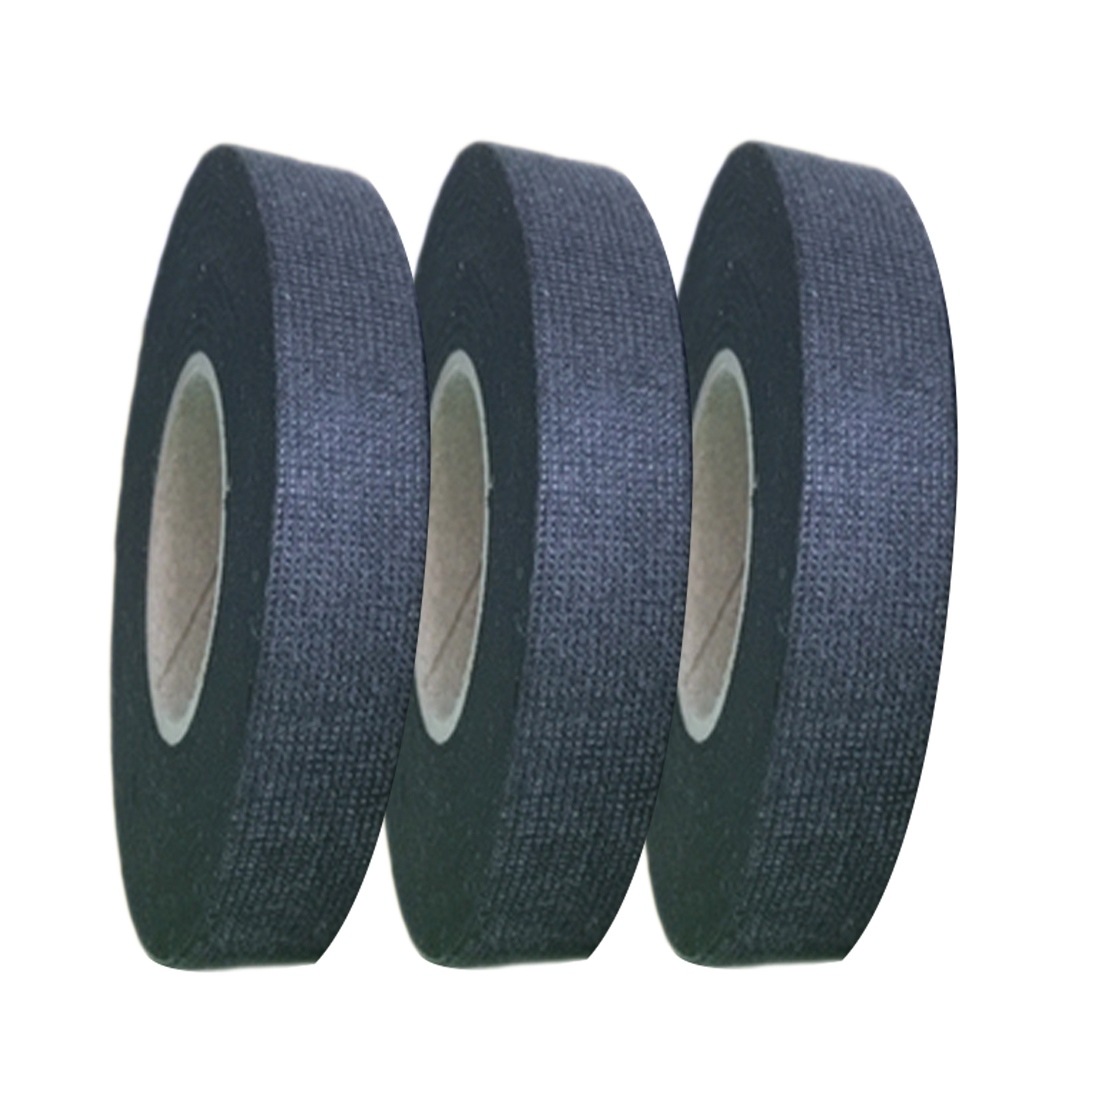 small resolution of high 1pc heat resistant 19mm x 15m adhesive flannel fabric cloth tape cable harness wiring for car auto repair parts tool in hand tool sets from tools on